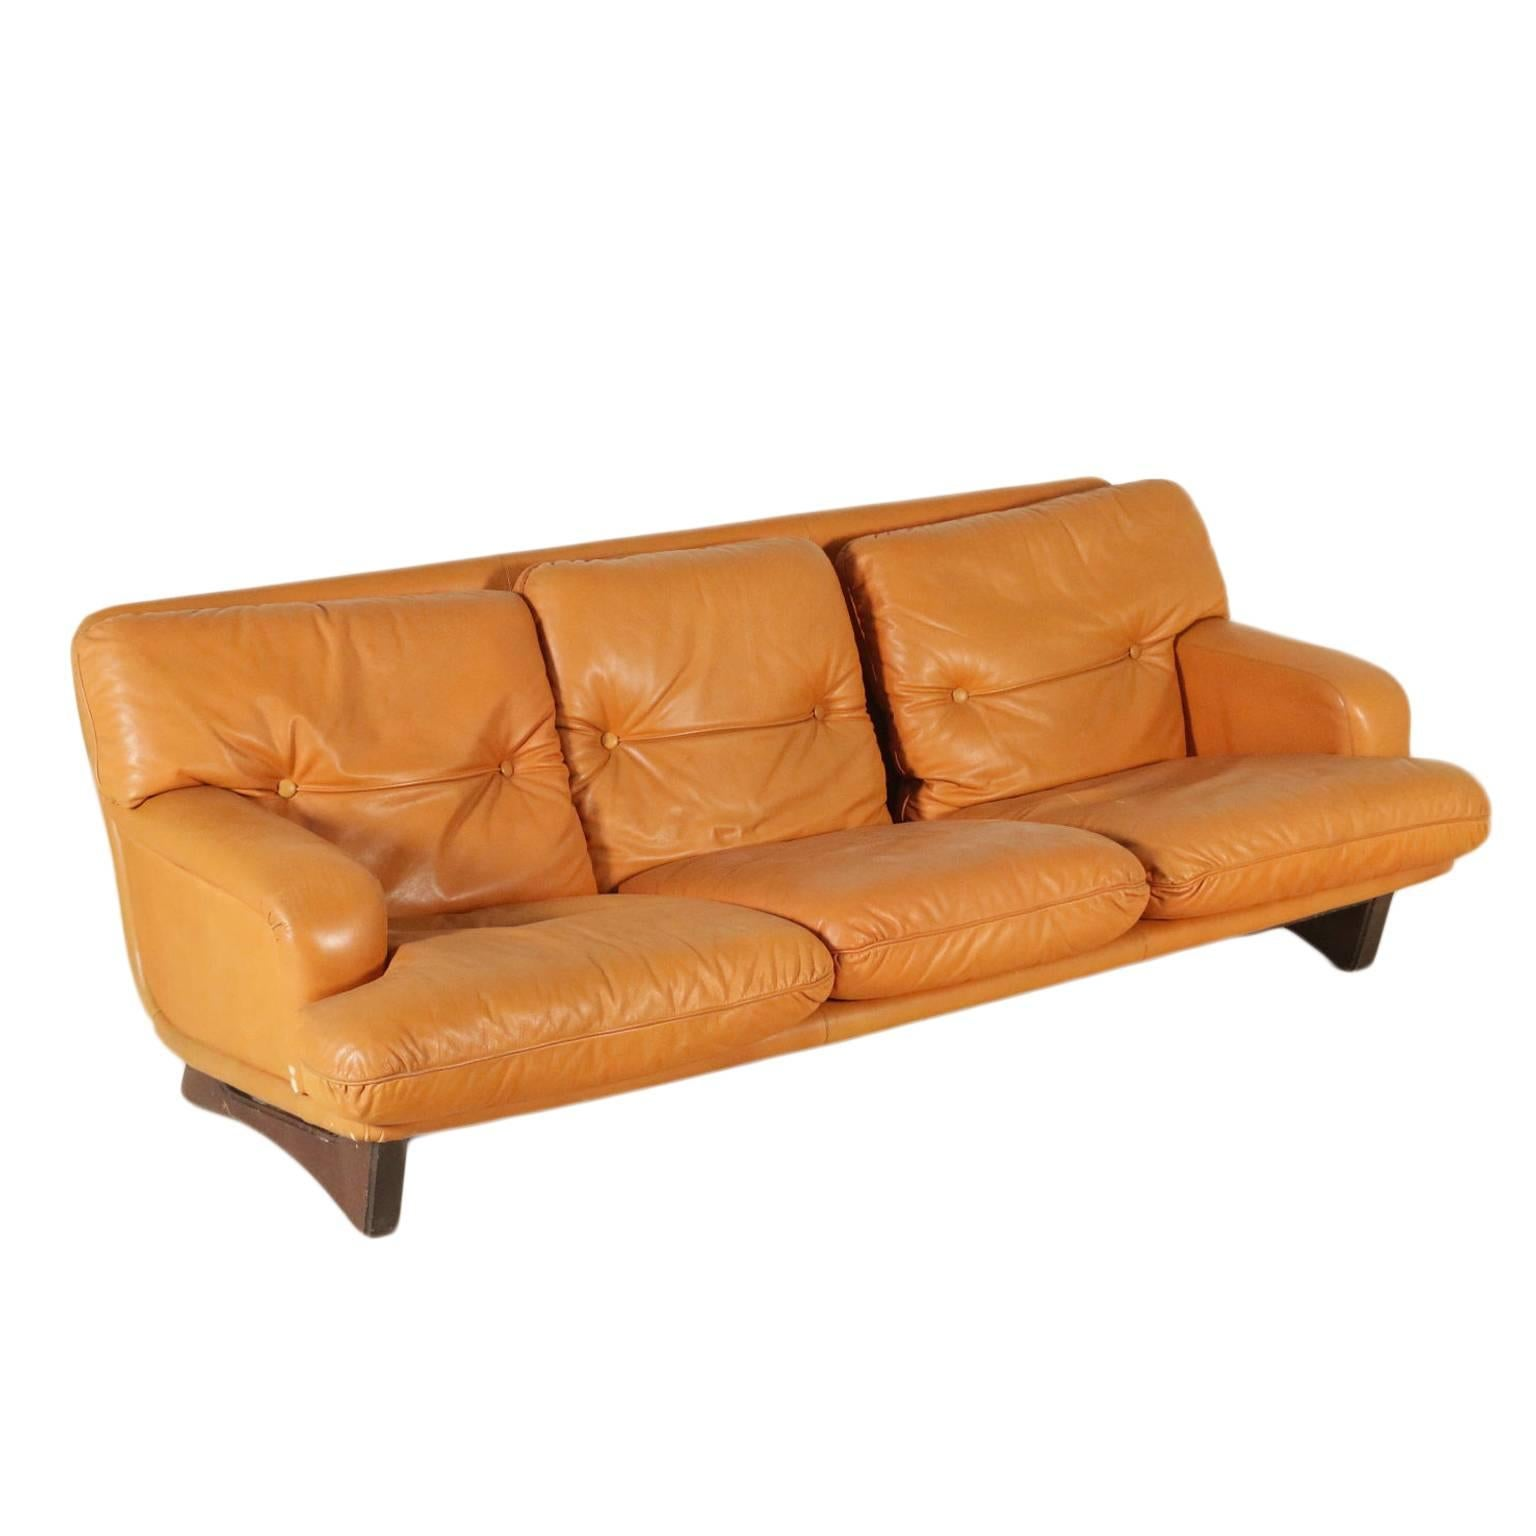 Exceptionnel Sofa Foam Padding Leather Upholstery Vintage, Italy, 1960s For Sale